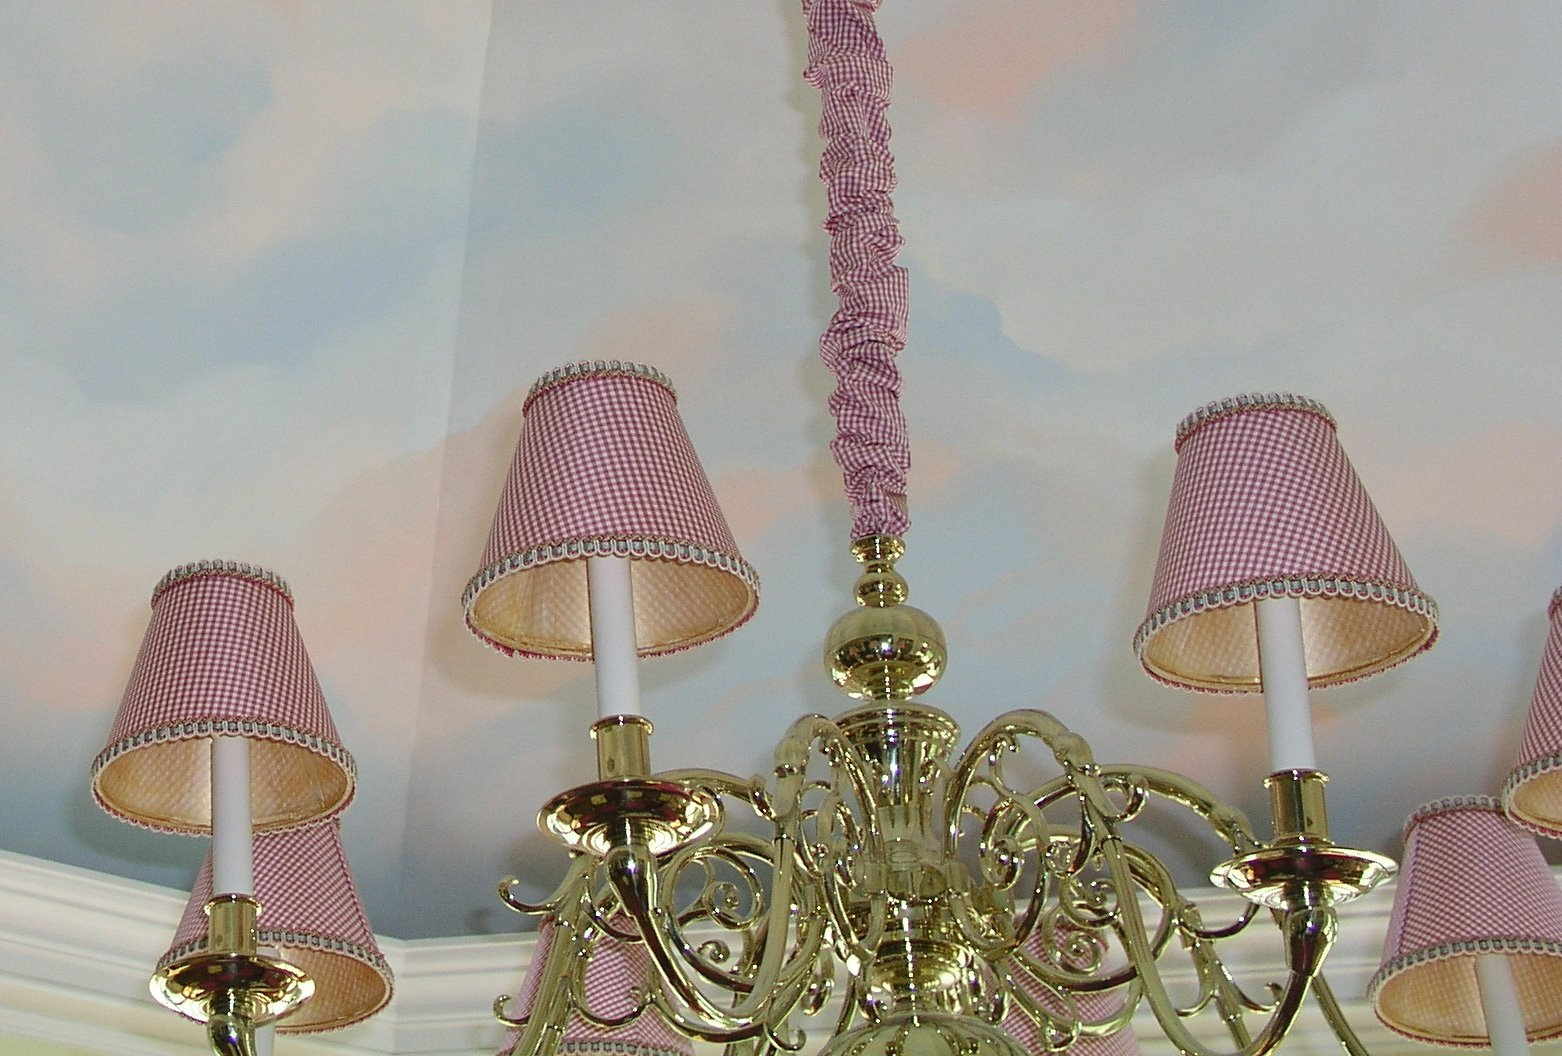 CHANDELIER SHADES BLUE TOILE – Toile Chandelier Shades